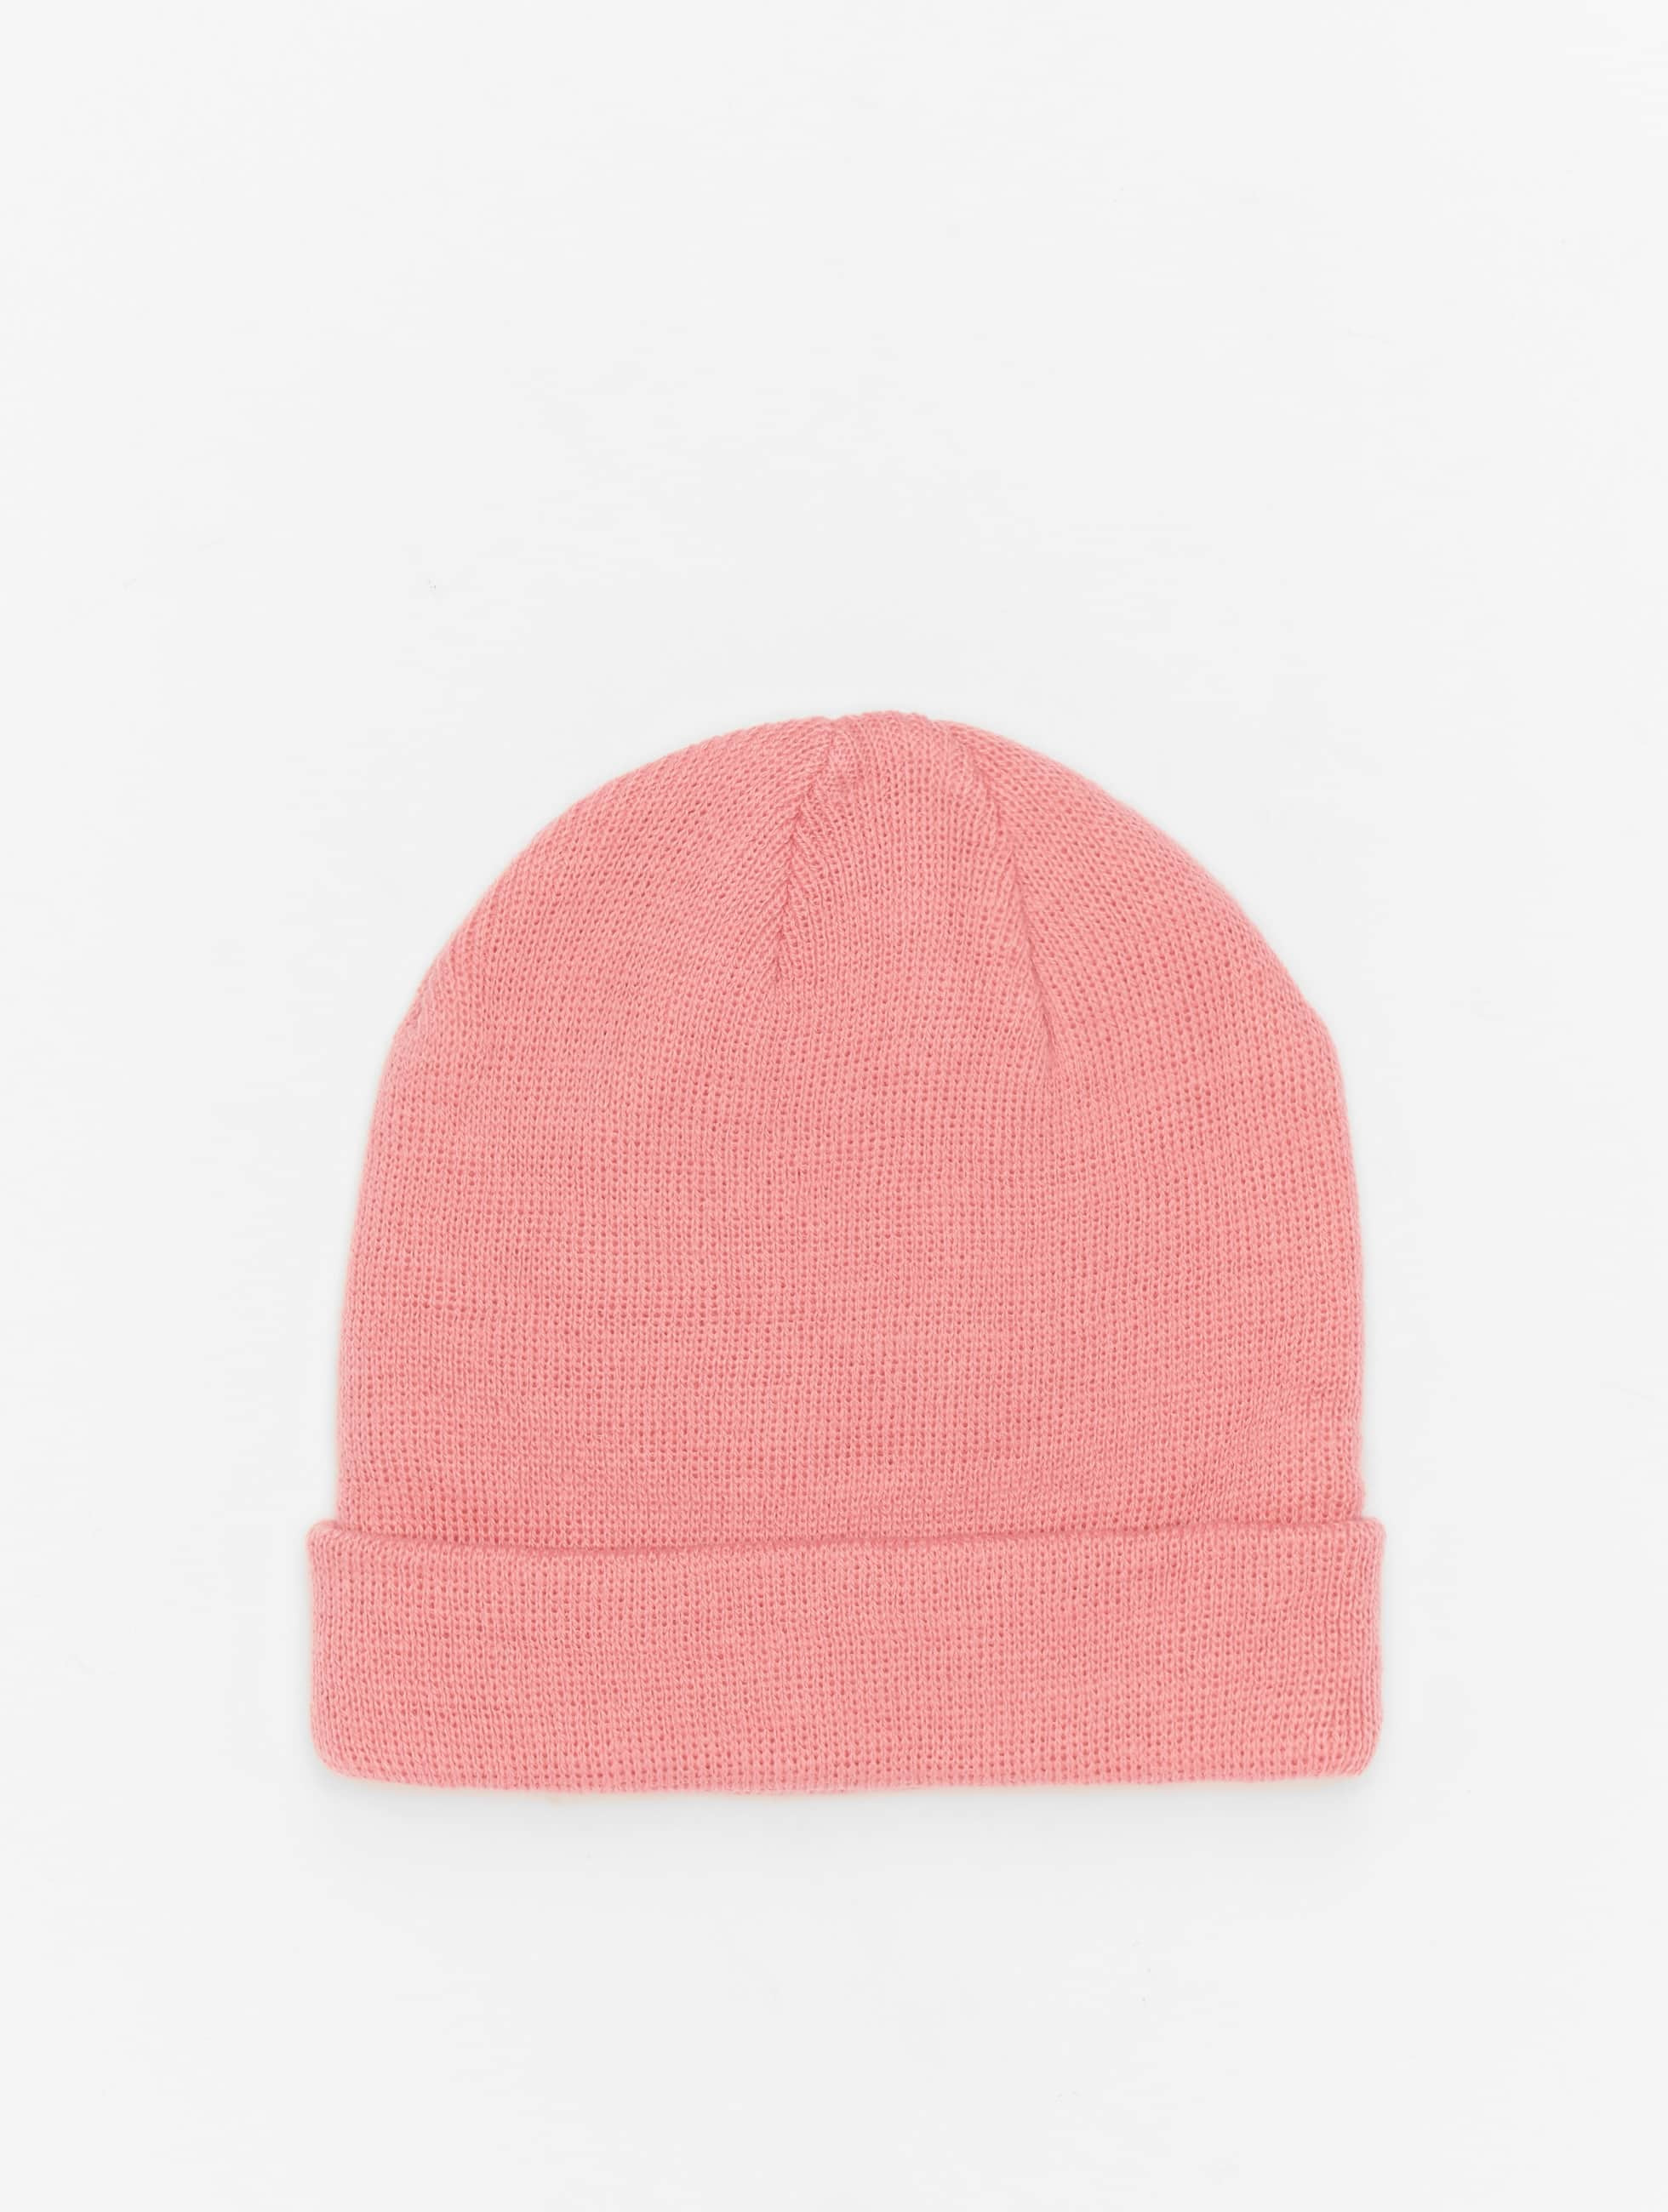 MSTRDS Beanie Short Pastel Cuff Knit pink